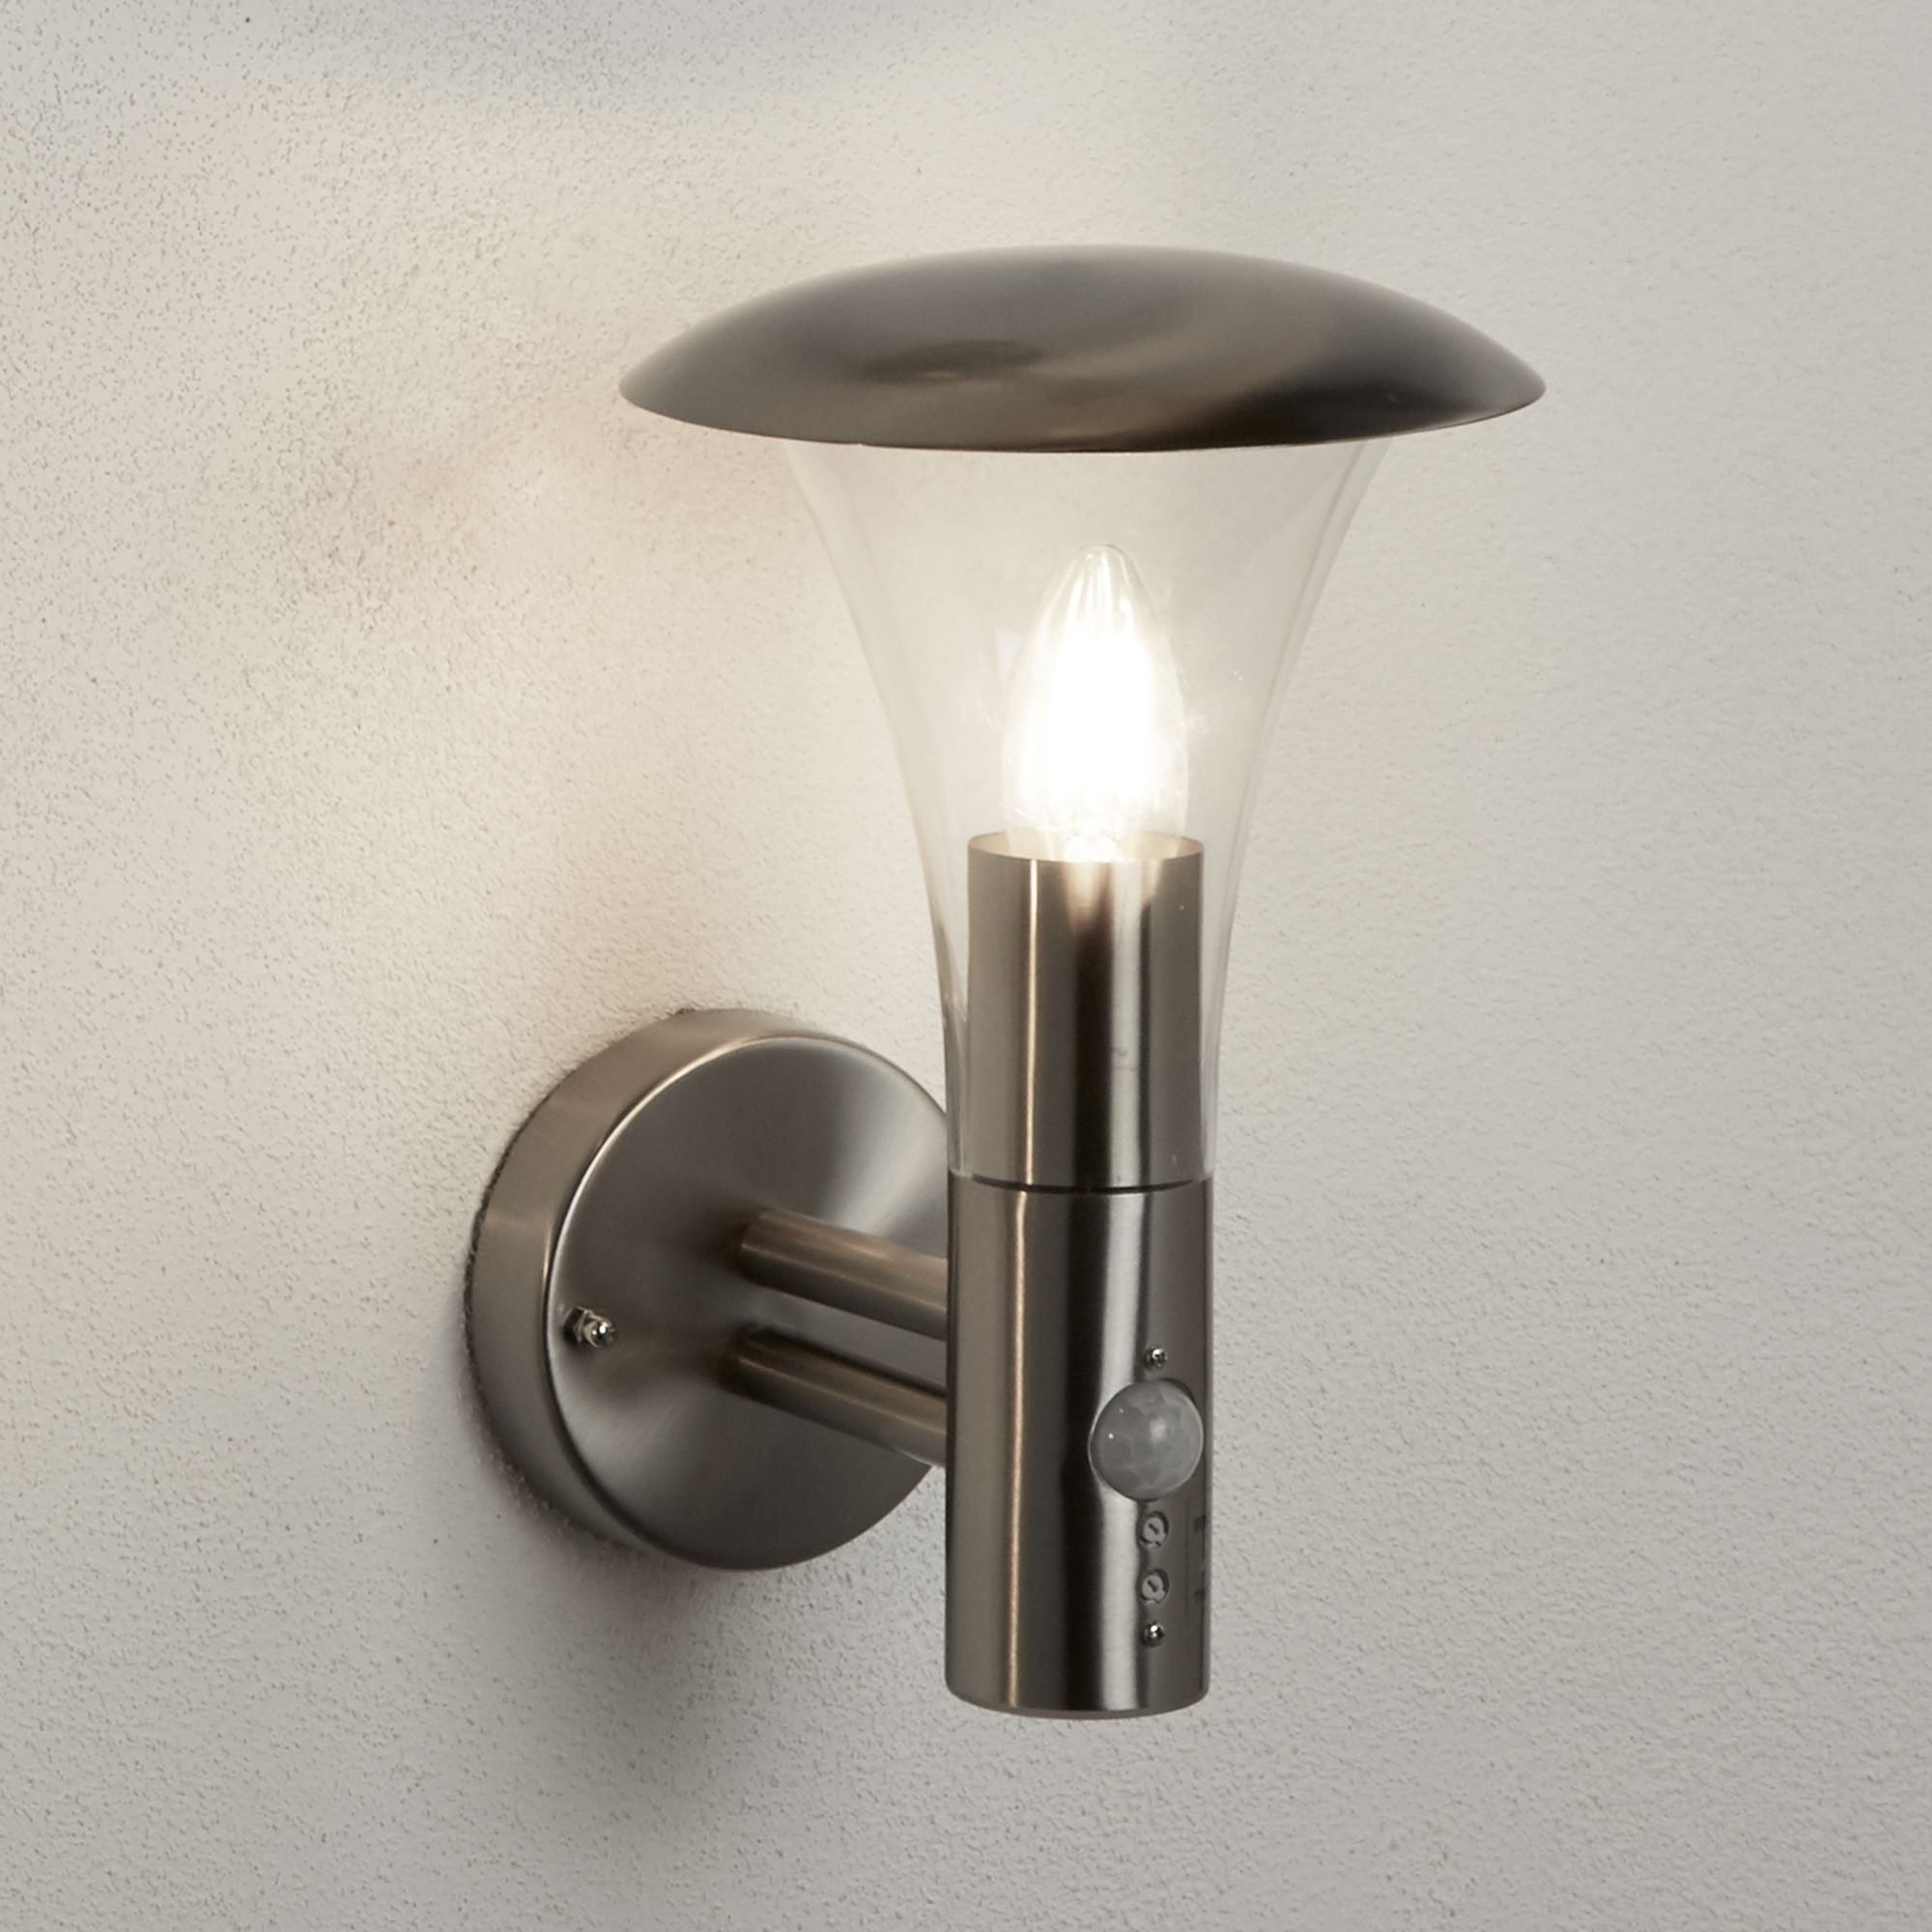 STRAND OUTDOOR WALL LIGHT - 1 LIGHT STAINLESS STEEL